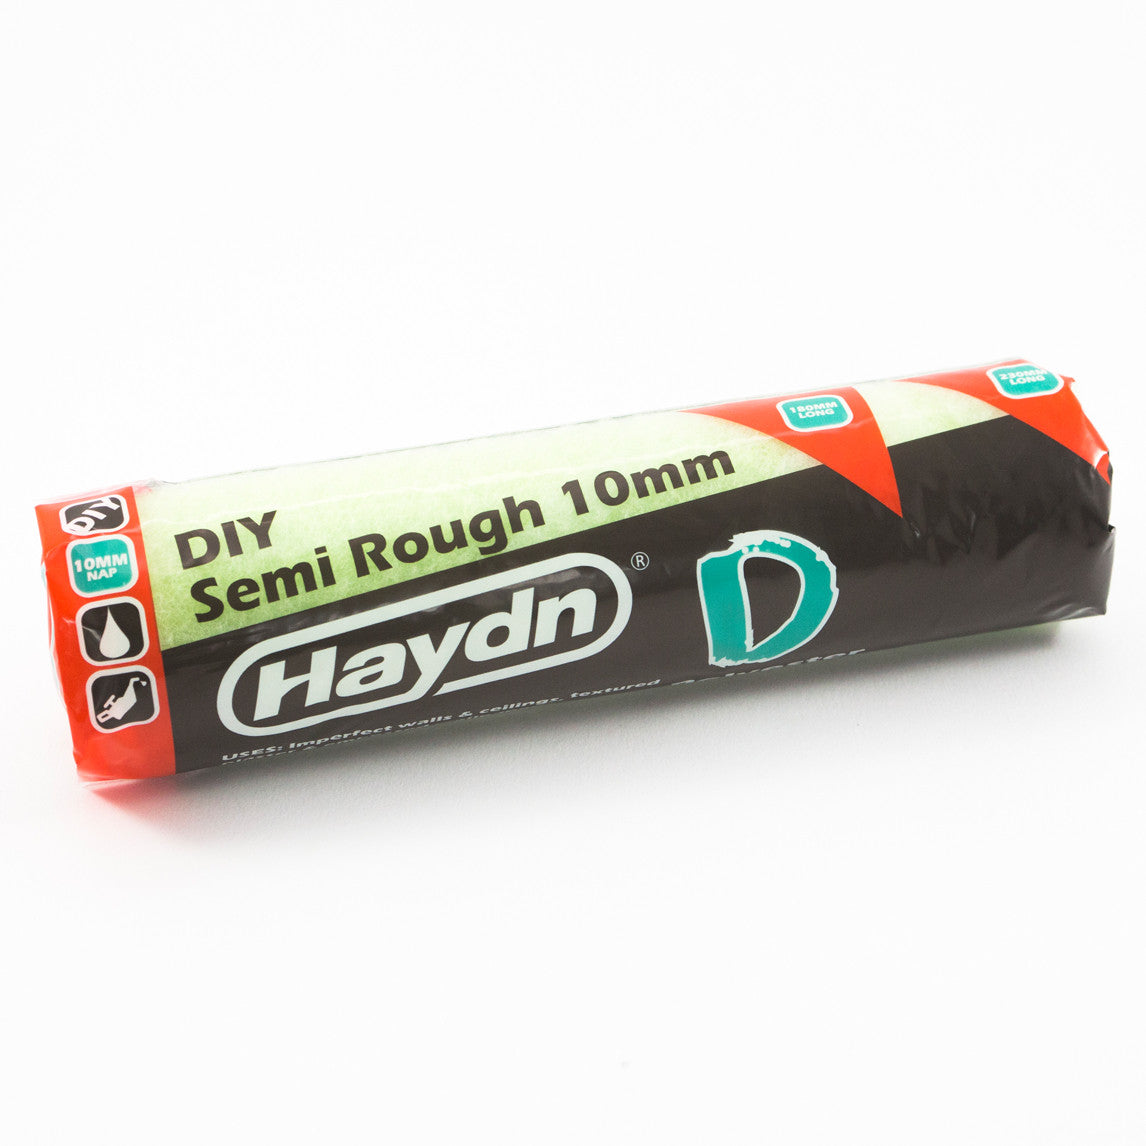 Haydn Brush Best Trade Tools Page 2